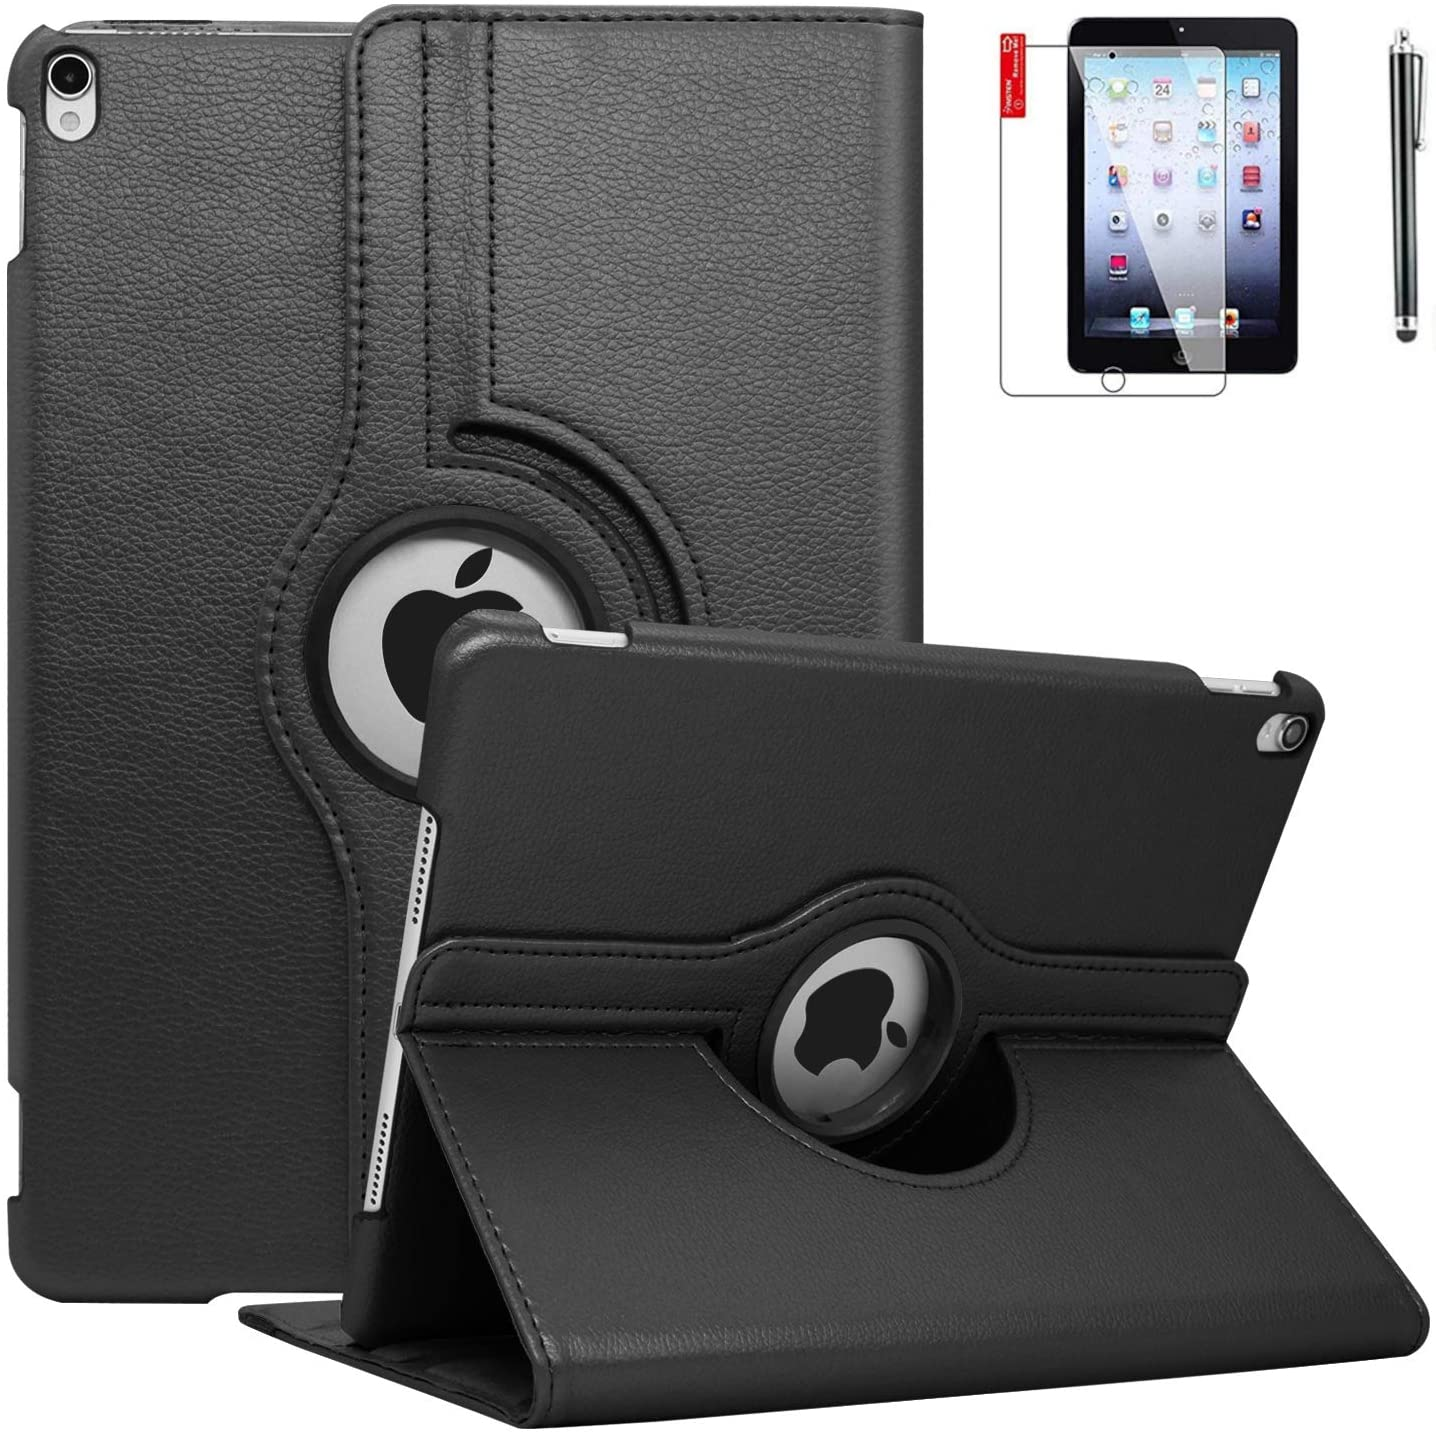 iPad Case 6th Generation with Screen Protector and Stylus - iPad 9.7 inch Air1 2018 2017 Case Cover - 360 Degree Rotating Stand, Auto Sleep Wake - A1822 A1823 (Deep Black)